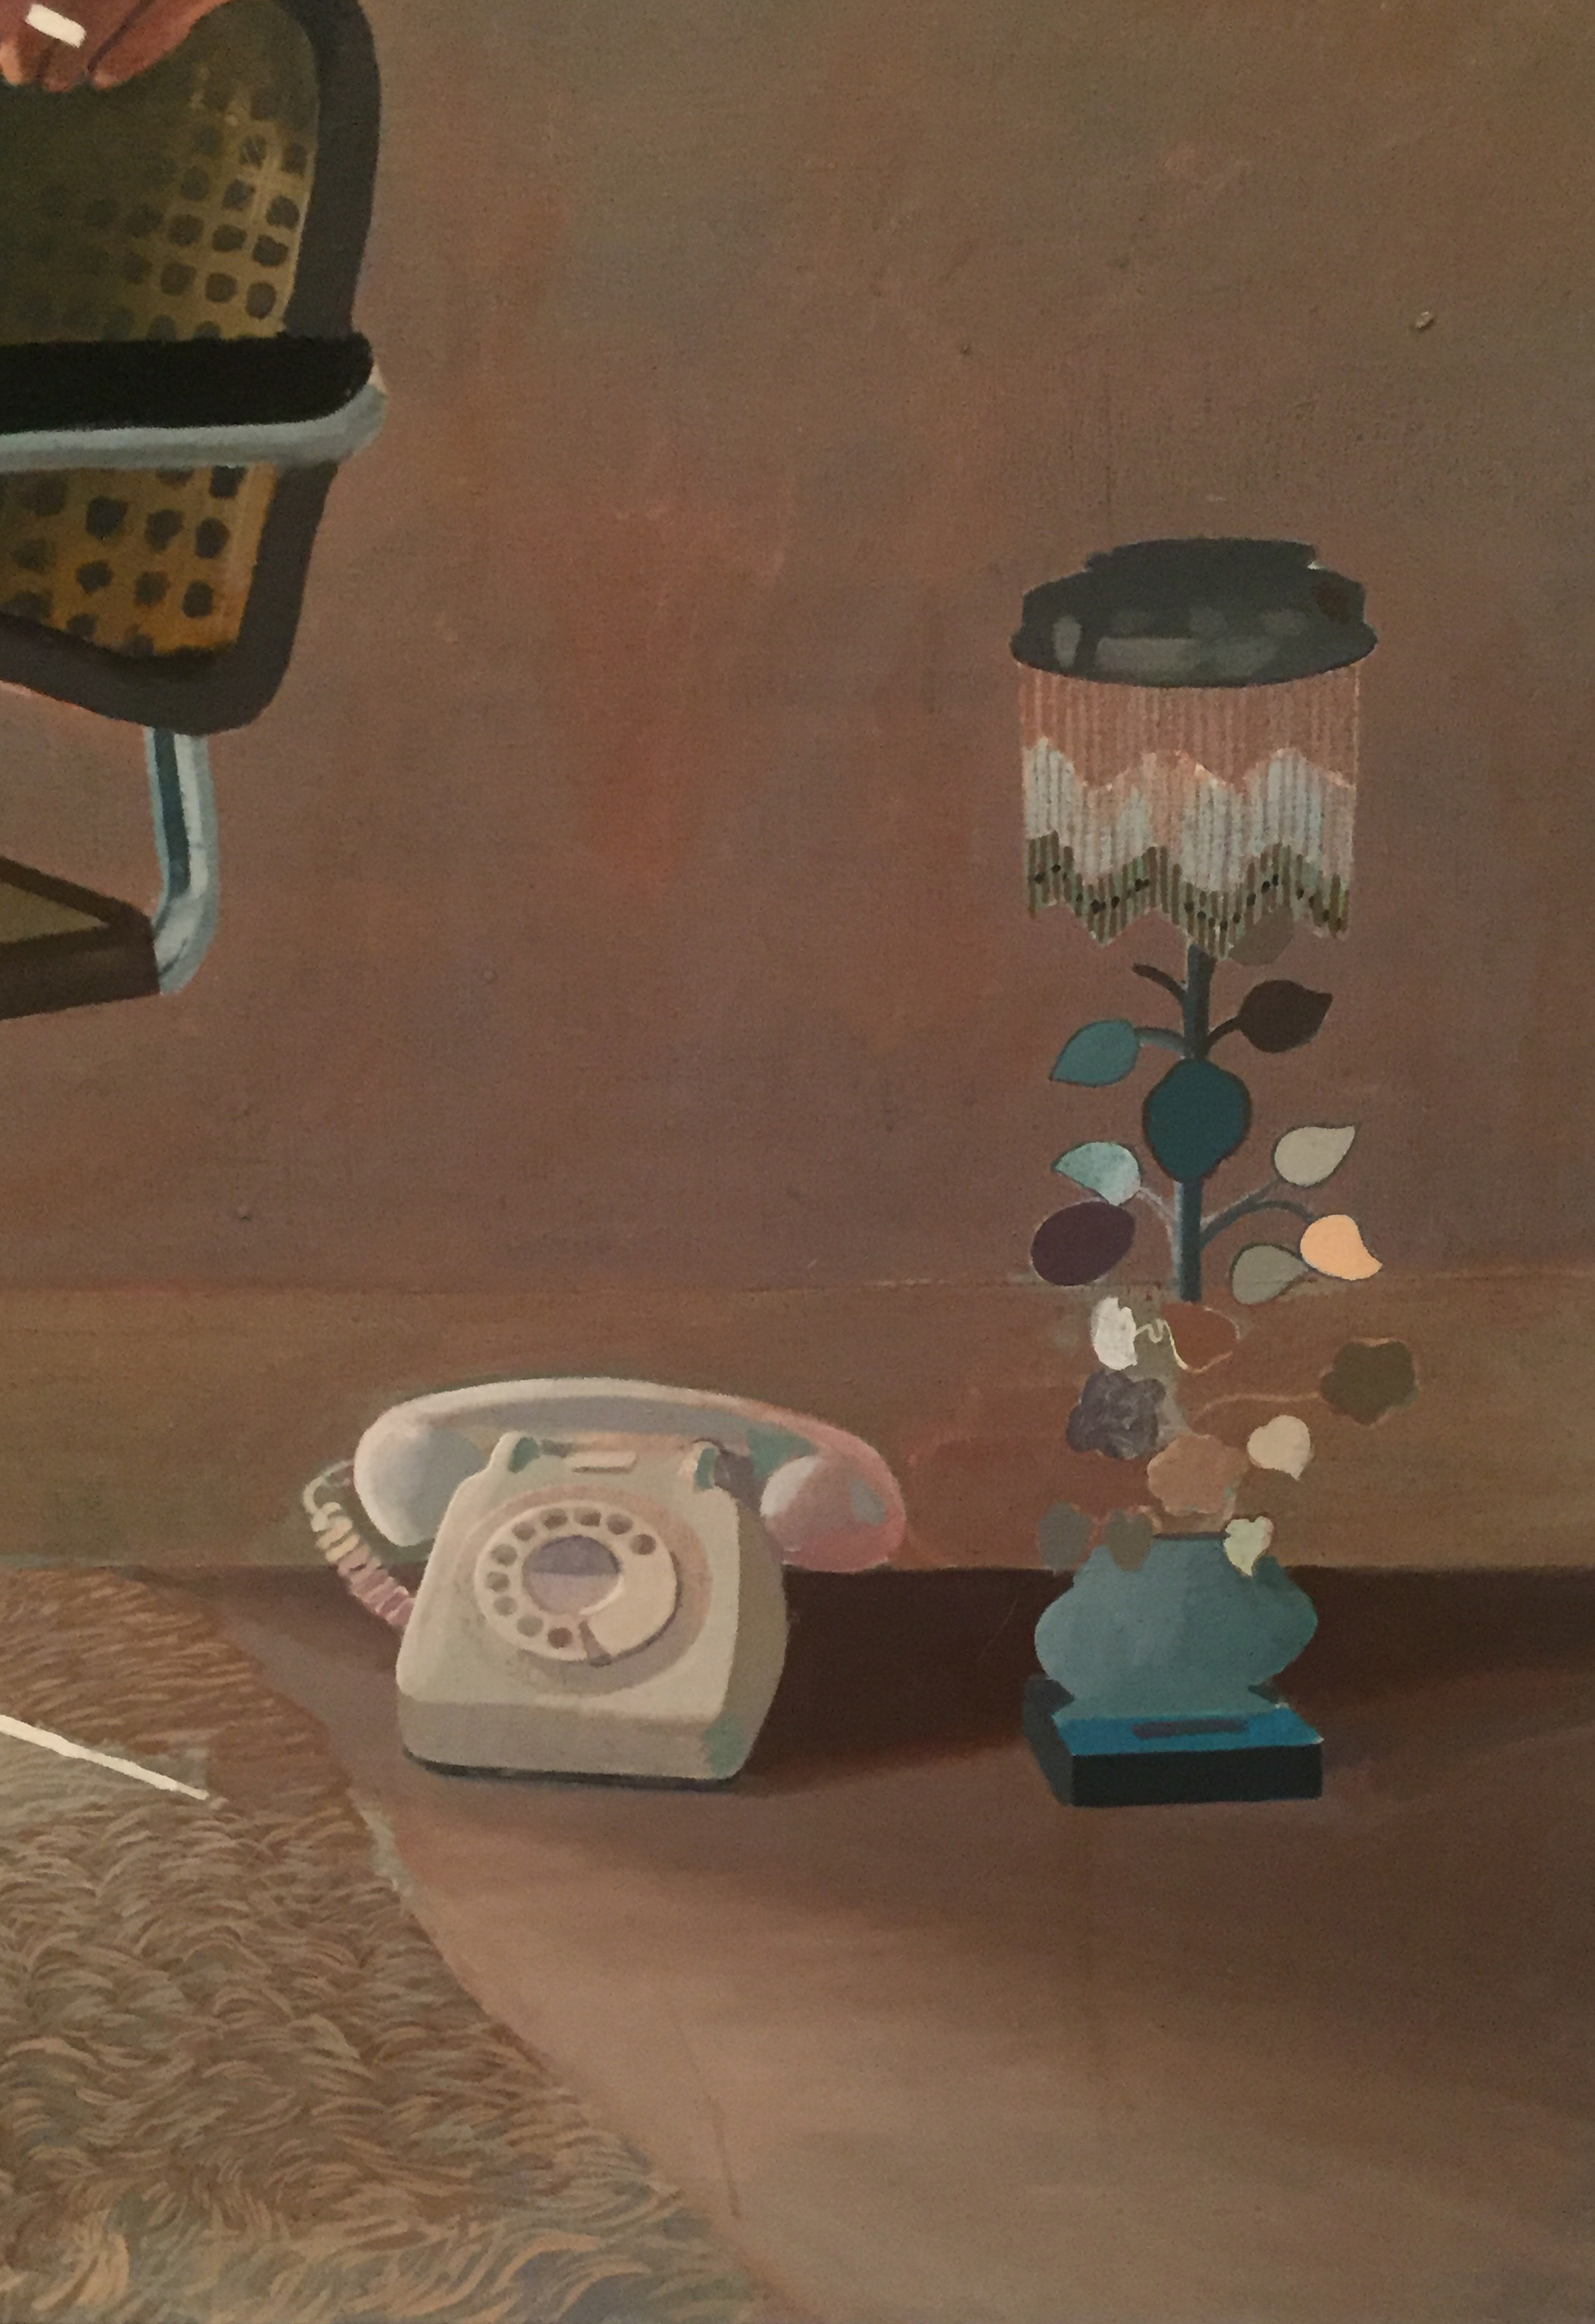 David Hockeny Lamp and Phone.JPG